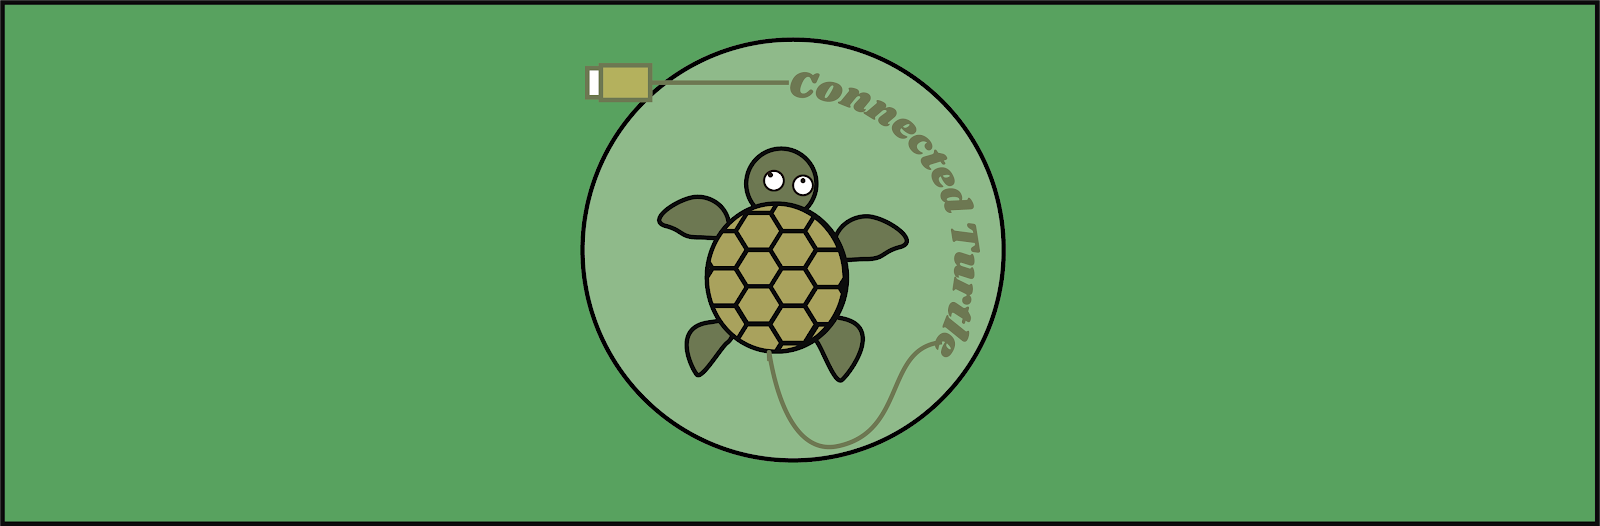 Connected Turtle